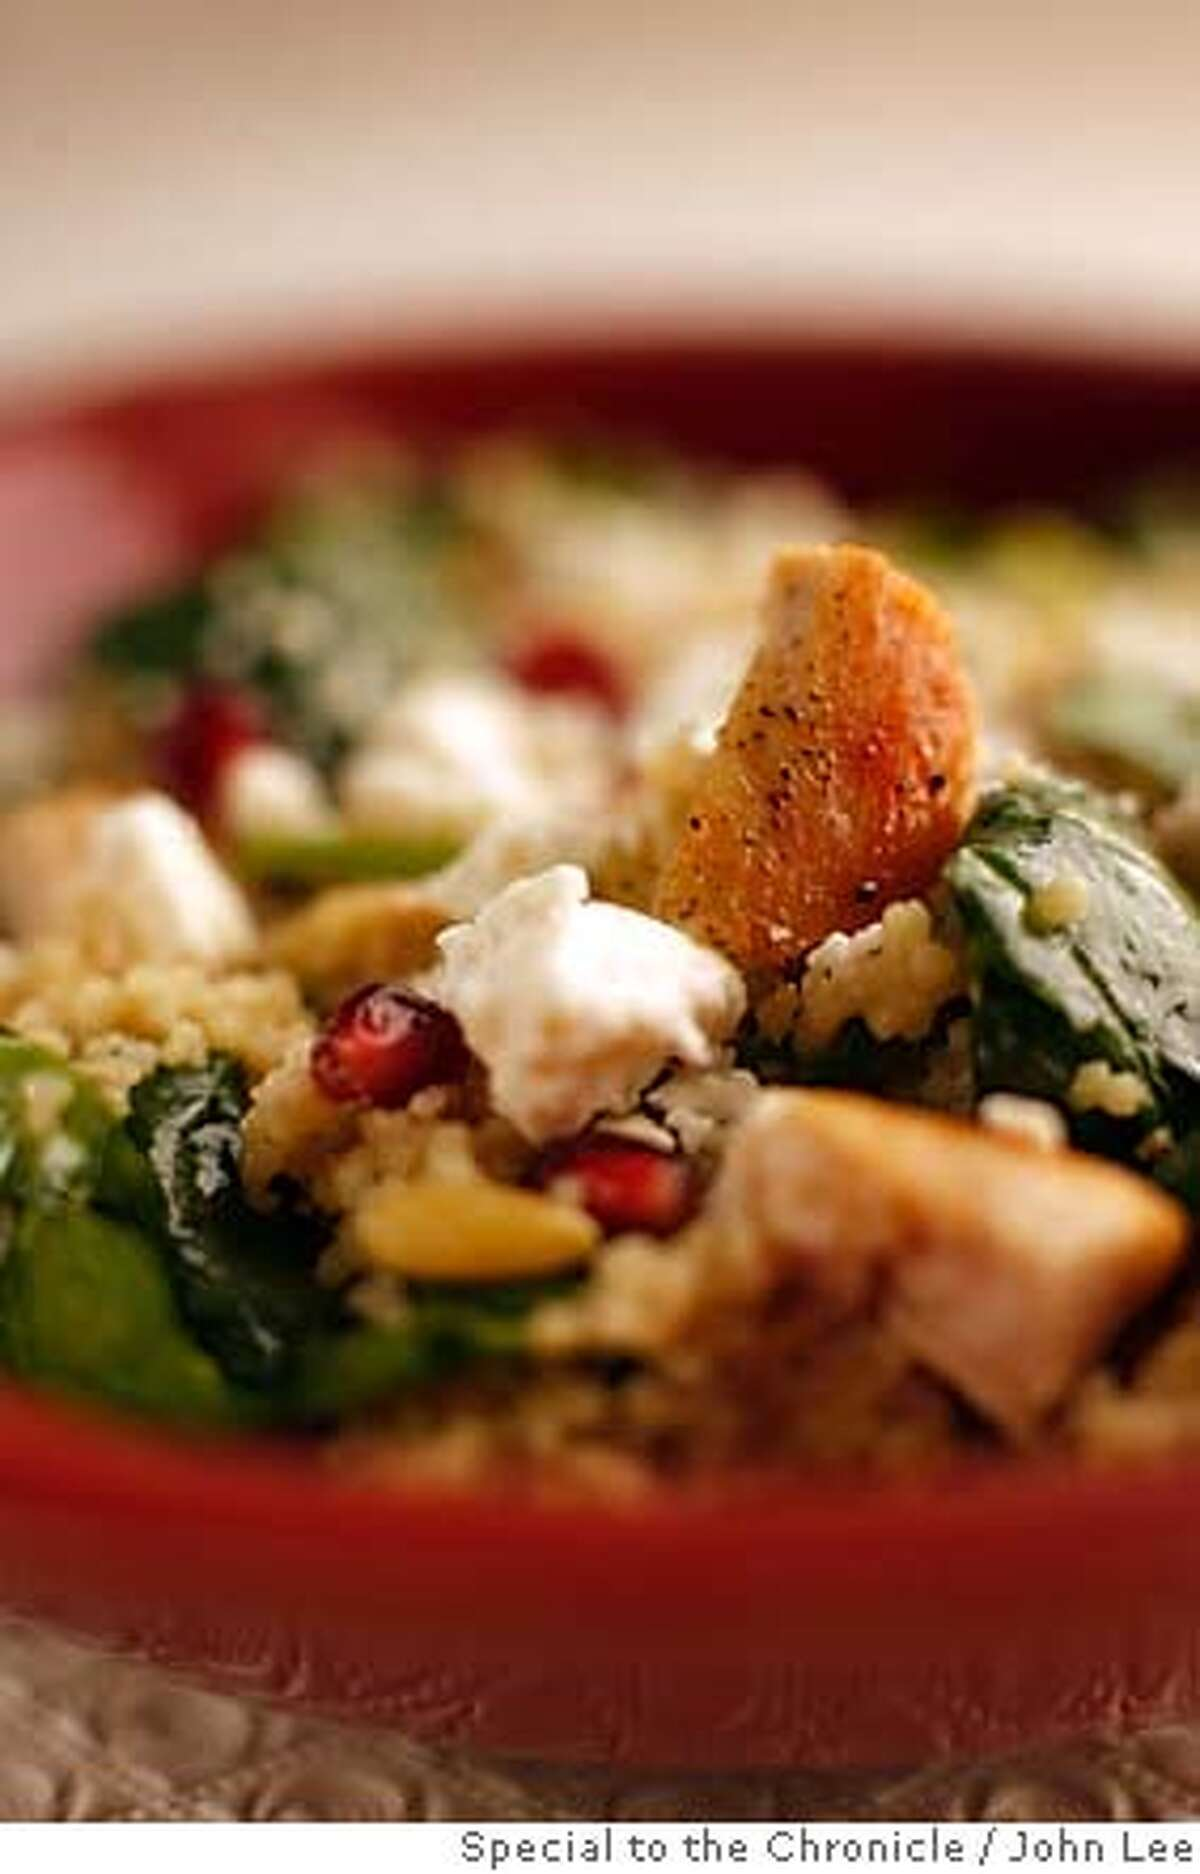 WORKING22_02JOHNLEE.JPG Working Recipe: Turkey Couscous Salad with Pomegranates. By JOHN LEE/SPECIAL TO THE CHRONICLE